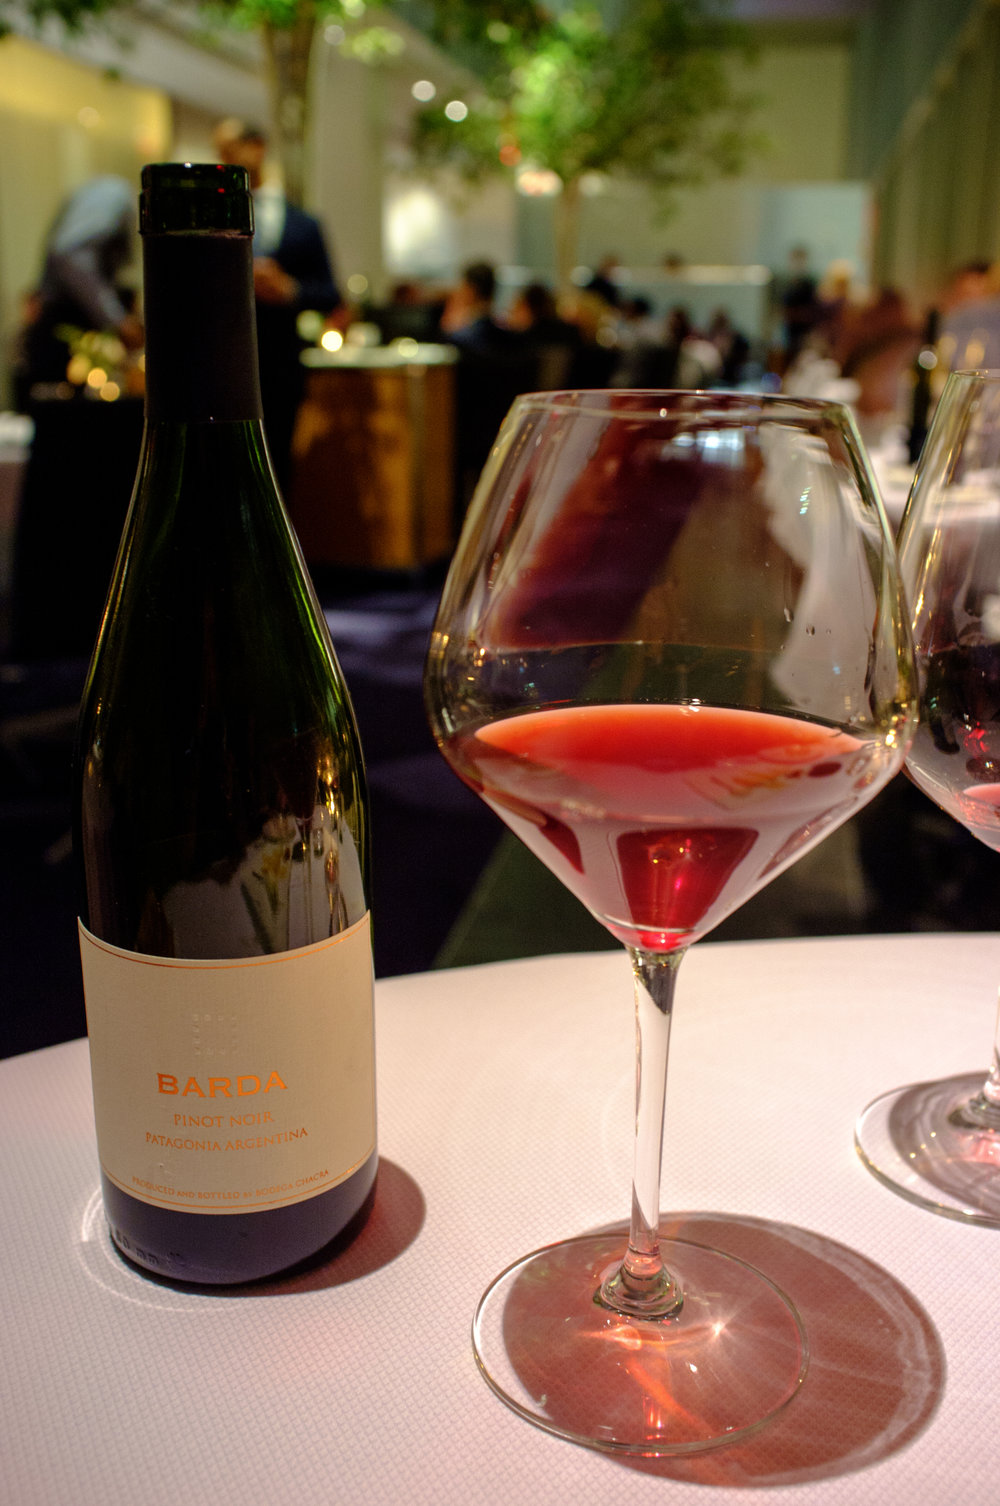 2013 Bodega Chacra Barda at The Modern, New York City